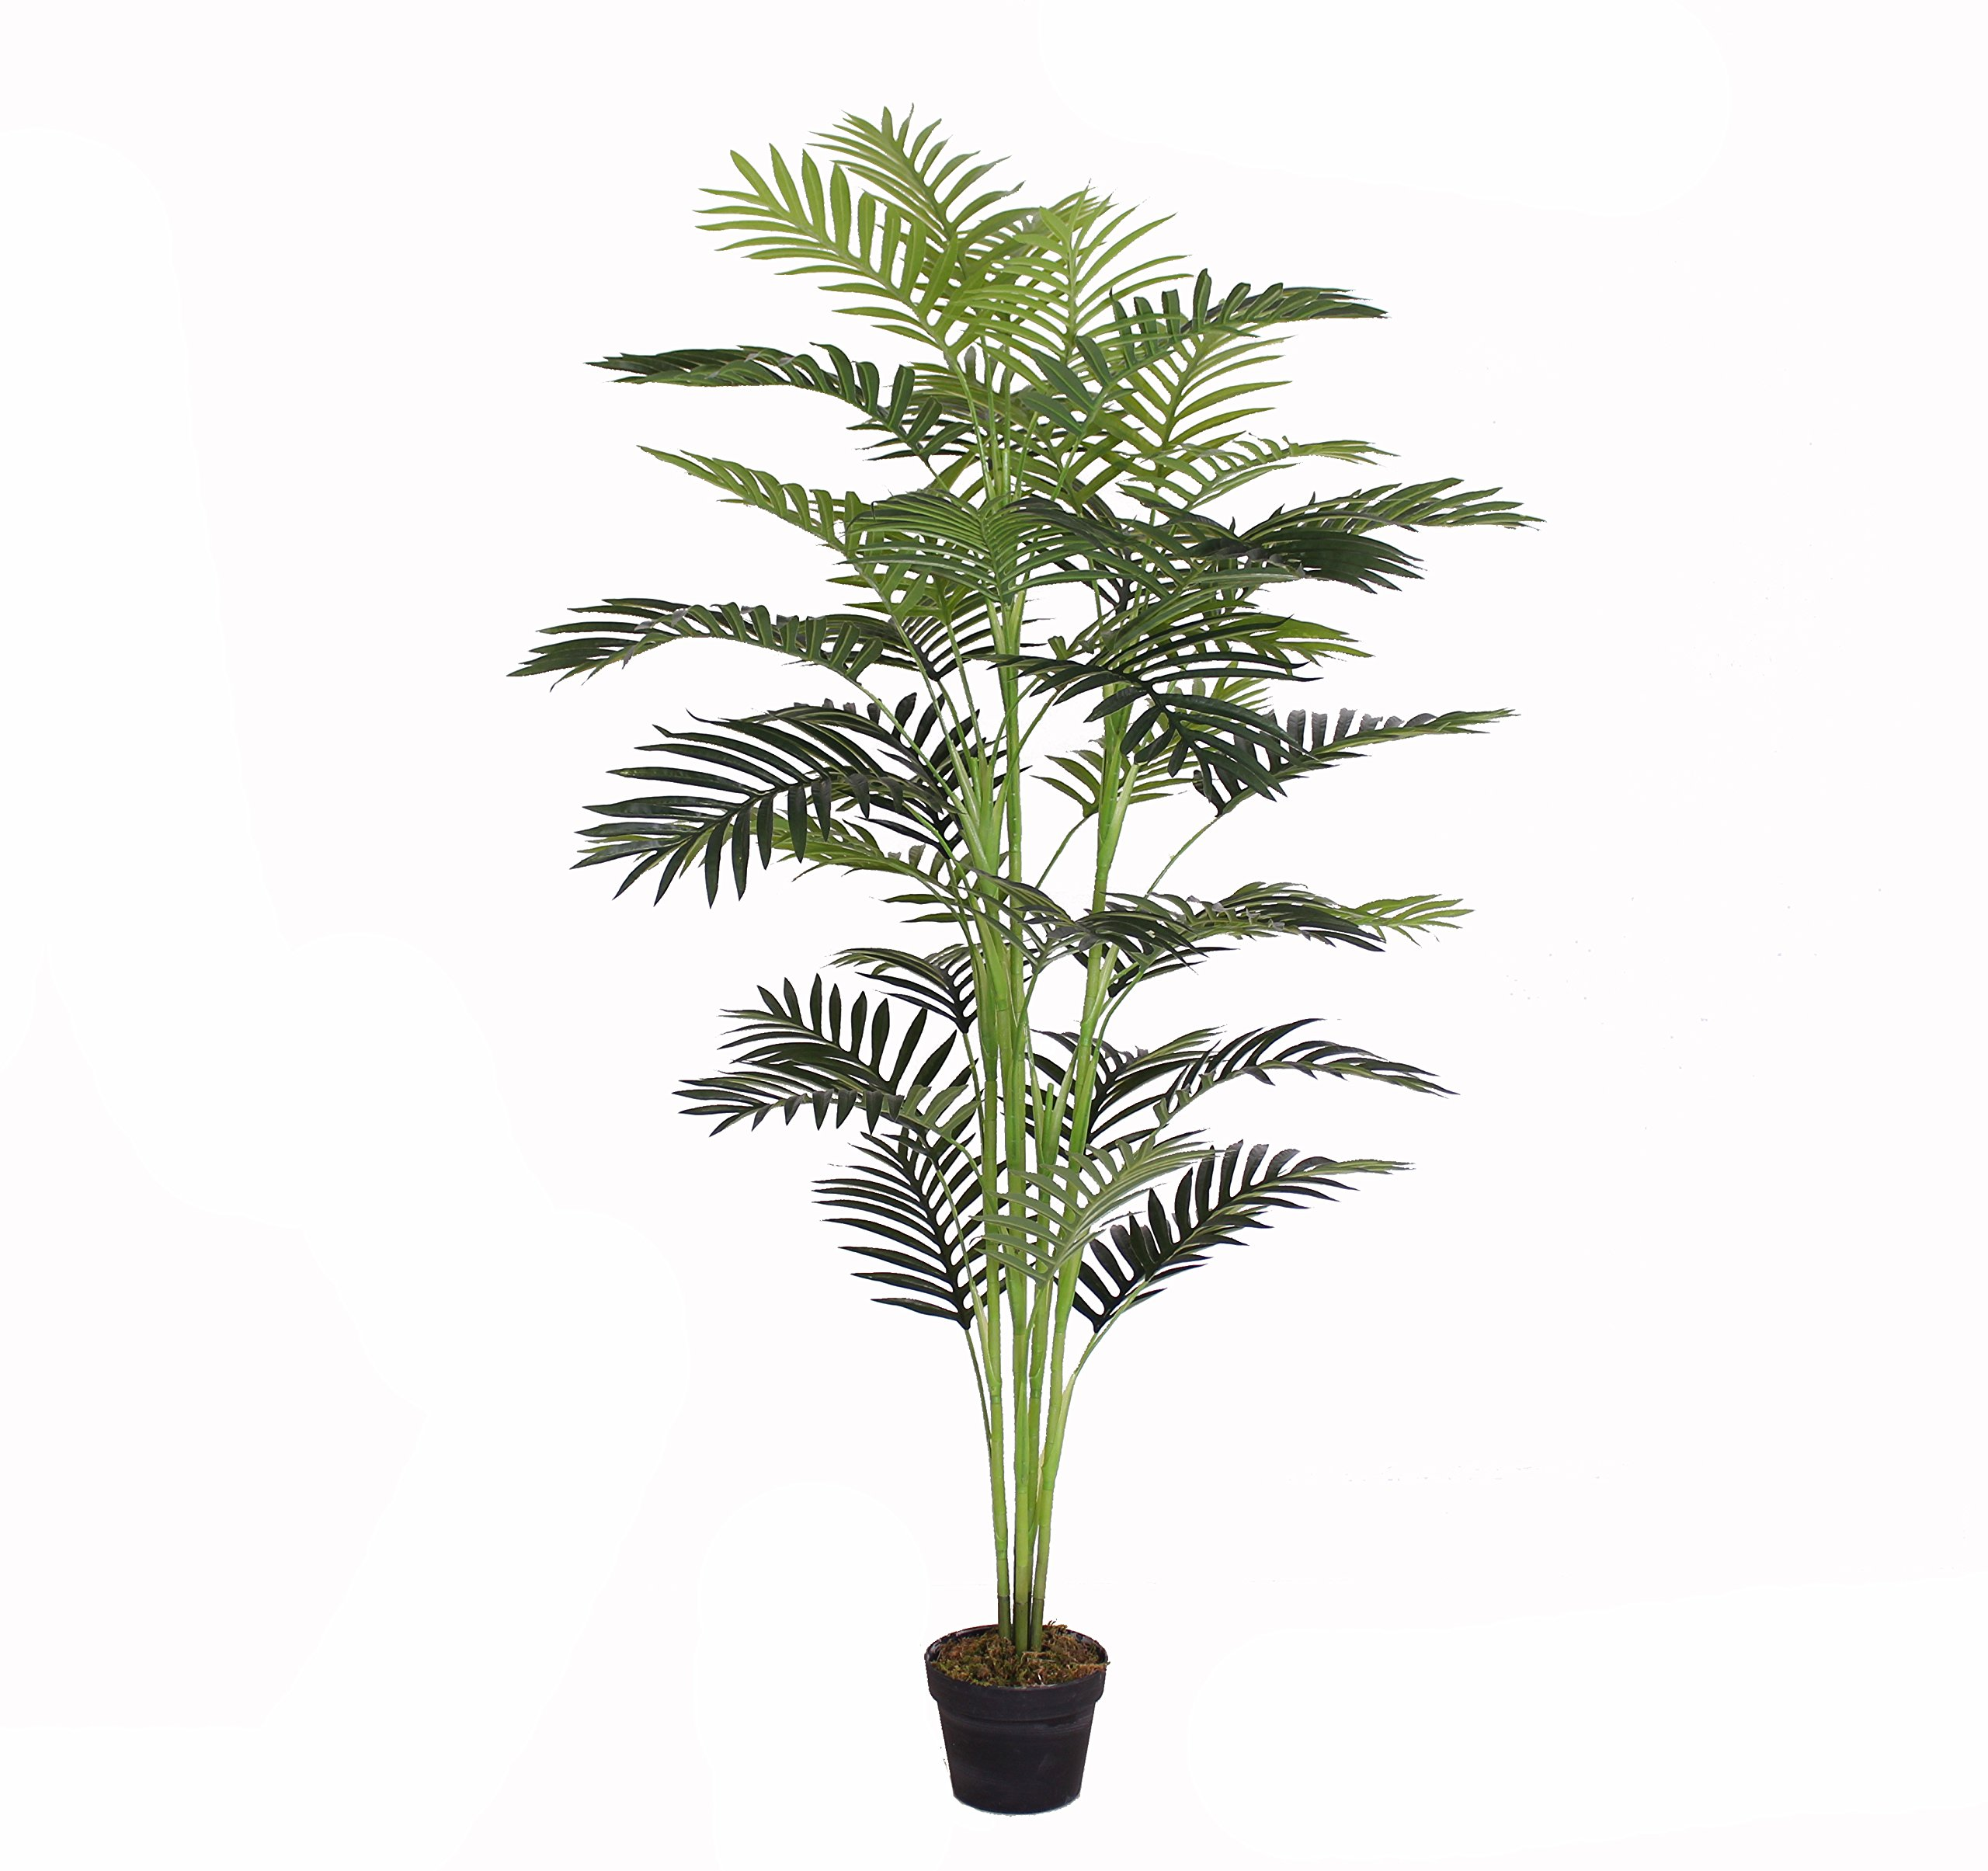 AMERIQUE Gorgeous 5.5' Tropical Areca Palm Tree Artificial Silk Plant with UV Protection, with Nursery Pot, Feel Real Technology, Super Quality, Feet, Green by AMERIQUE